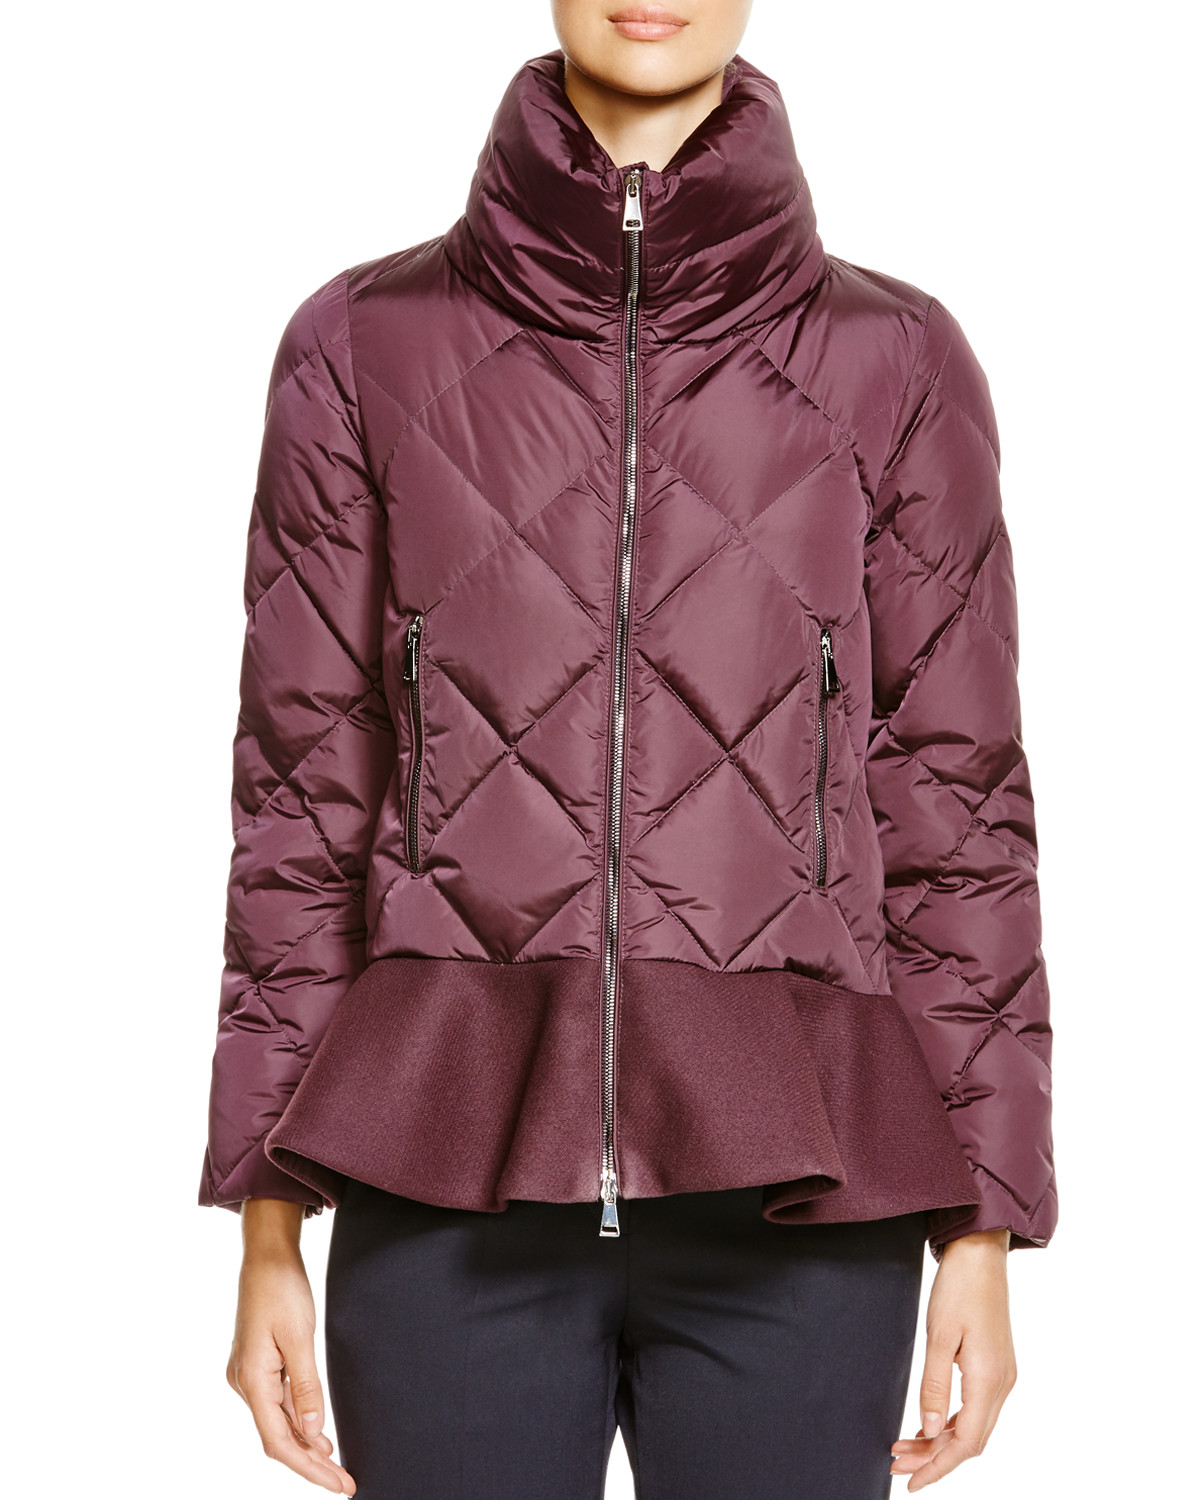 image: moncler vouglette peplum coat, available exclusively at bloomingdale's and bloomingdales.com